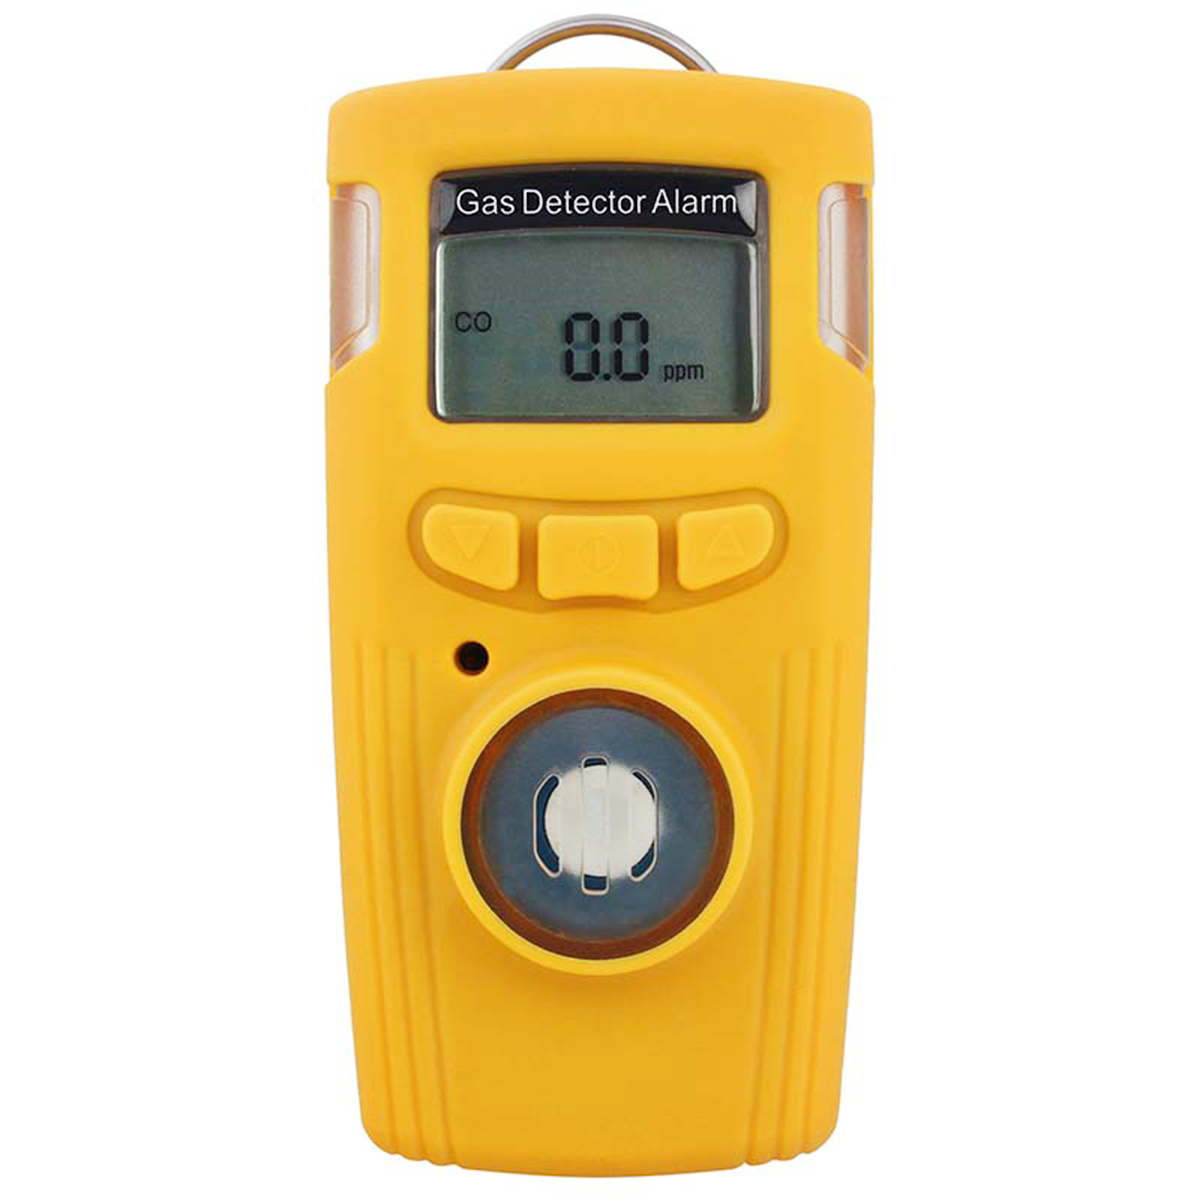 Hti New HT-530 Mini LCD Gas Detector Alarm Carbon Monoxide Detector Electrical CO Gas Tester Combustible Gas Leak High Accurac digital gas analyzers lcd co gas detector carbon monoxide measurement alarm detector 0 2000ppm